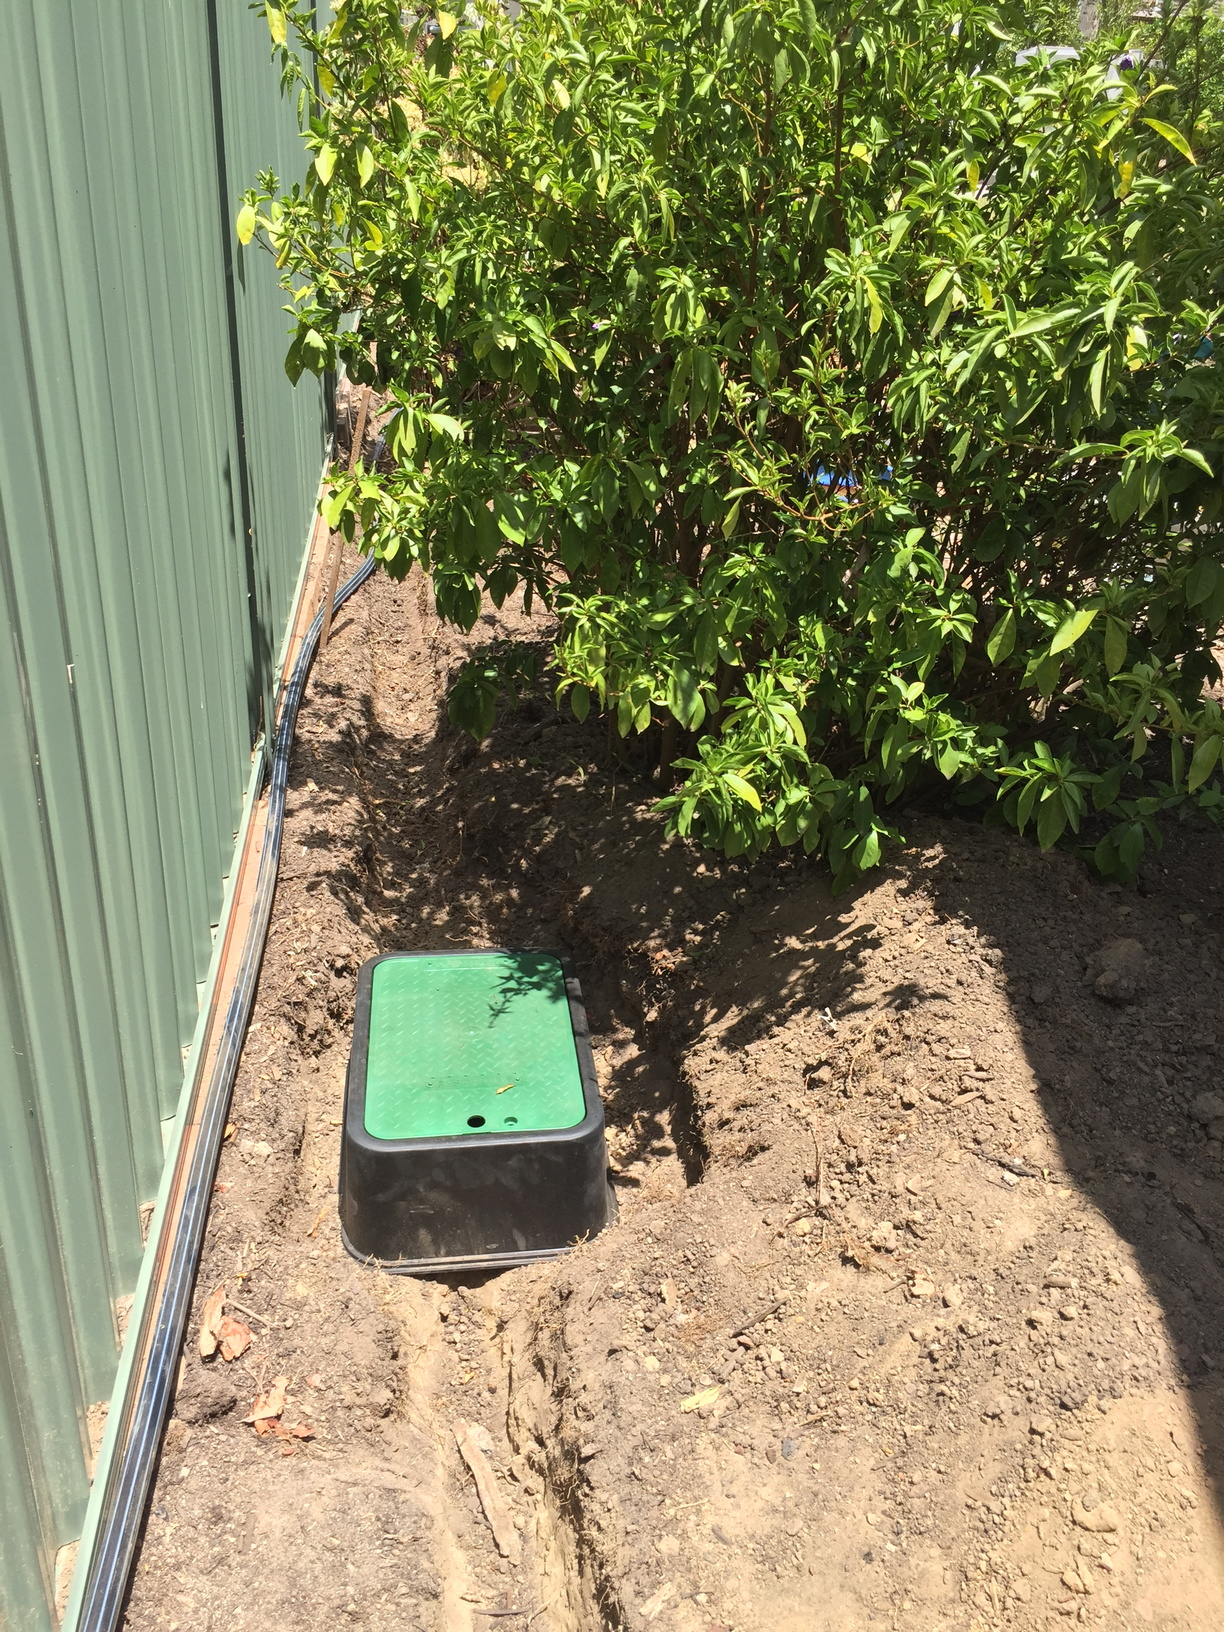 Valve box (2 valves not yet connected) controlling the blueberry bed, herb garden, mango trees and succulent garden